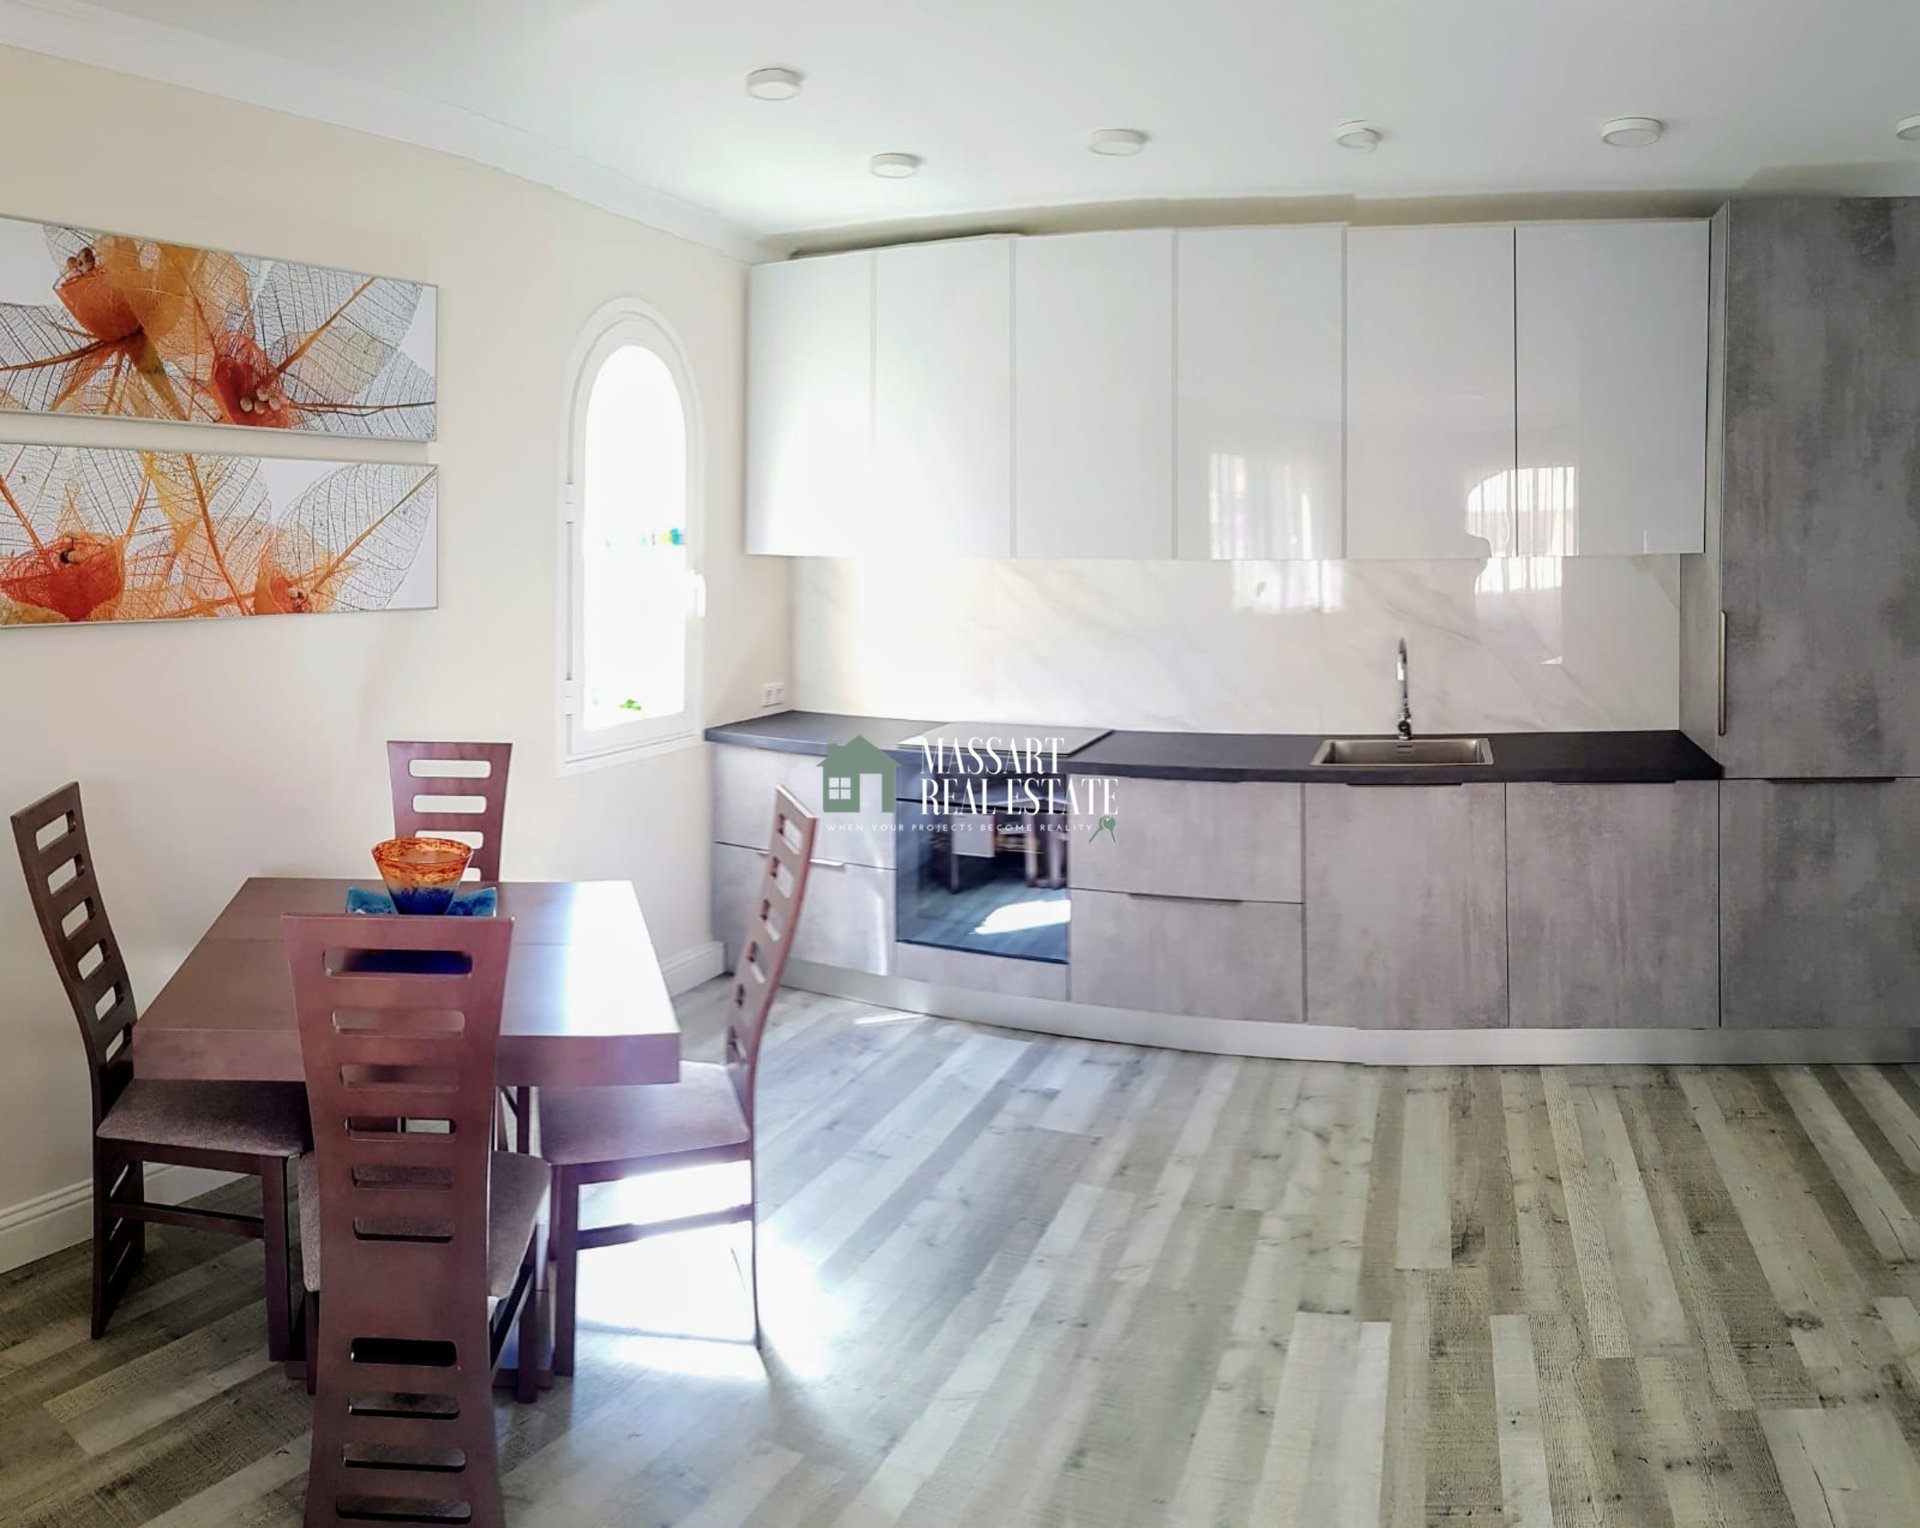 For sale in the coastal area of Los Cristianos, in the Parque Tropical I complex, completely renovated and furnished apartment with privileged views of the sea.